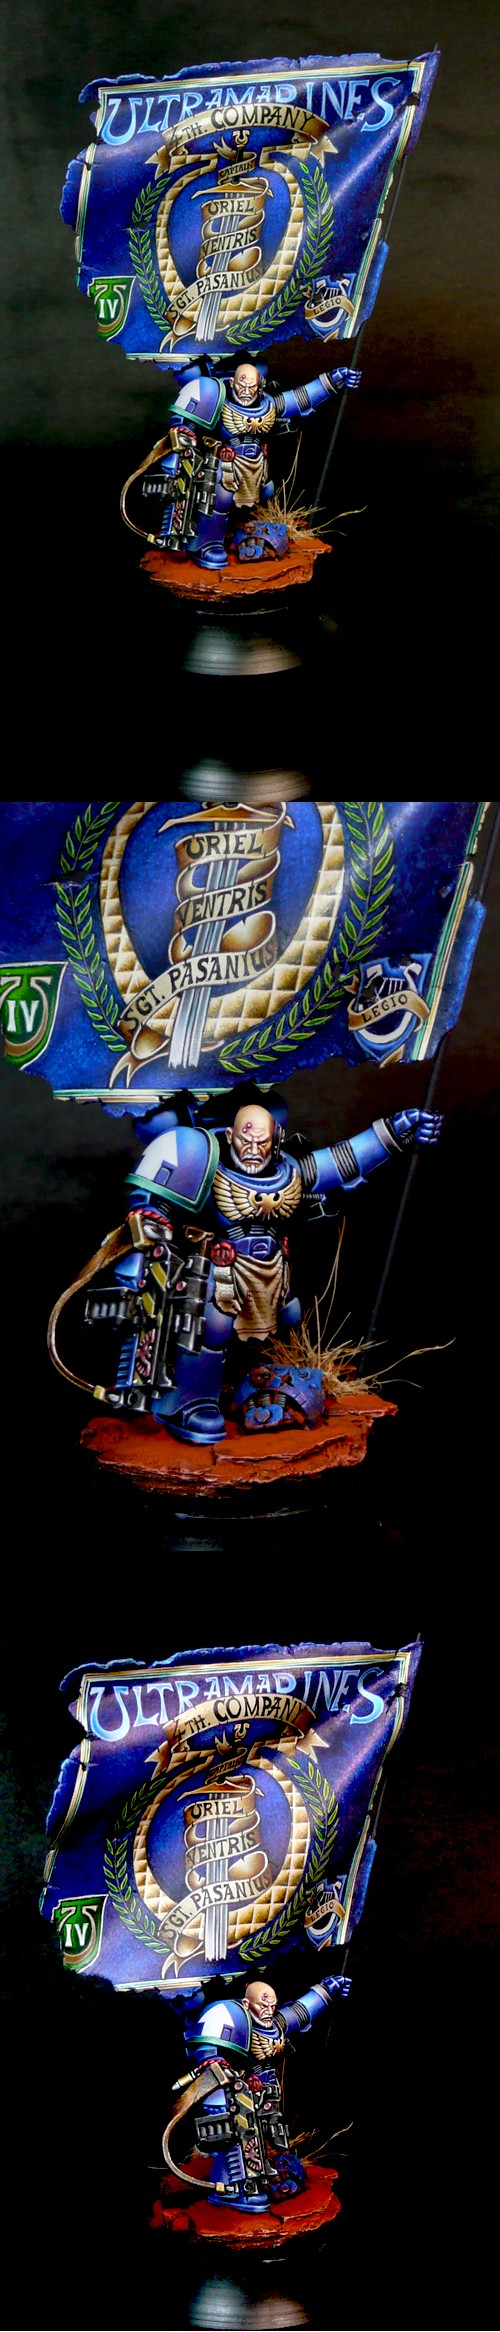 SPACE MARINE SILVER AWARD IN GOLDEN DEMON UK 2013